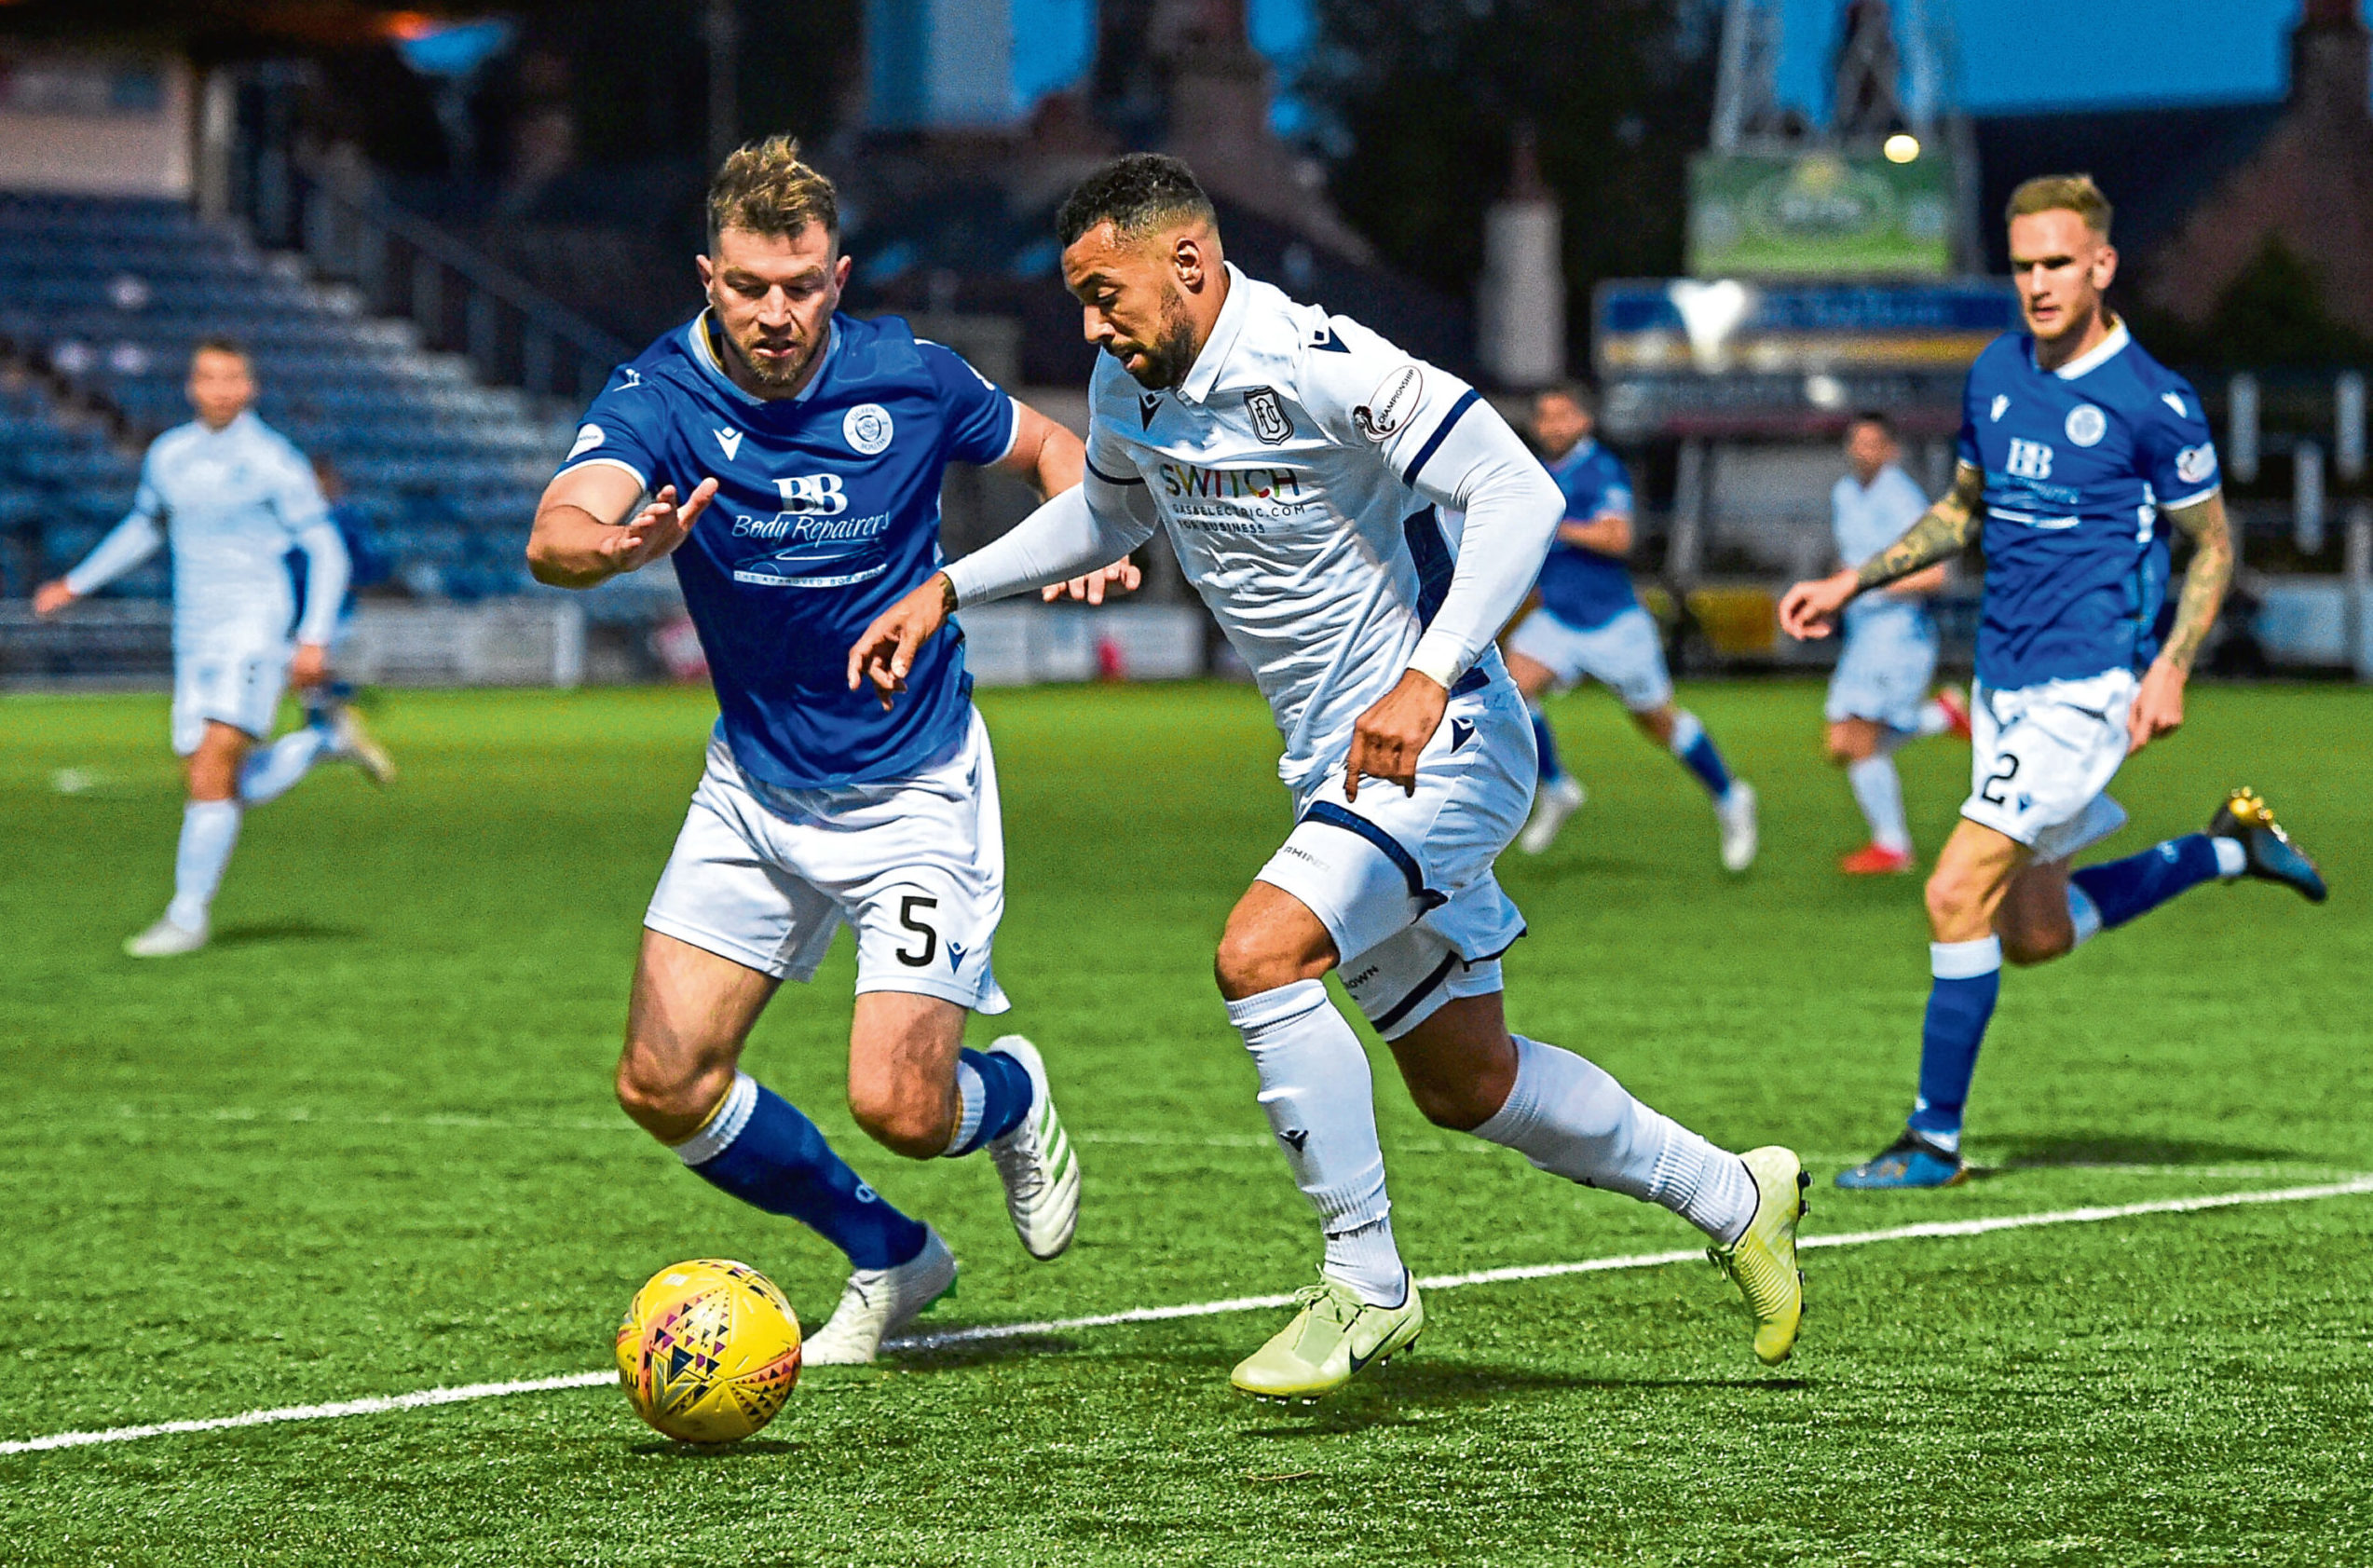 Queen of the South's Darren Brownlie, left. in action with Dundee's Kane Hemmings when the sides met in September.